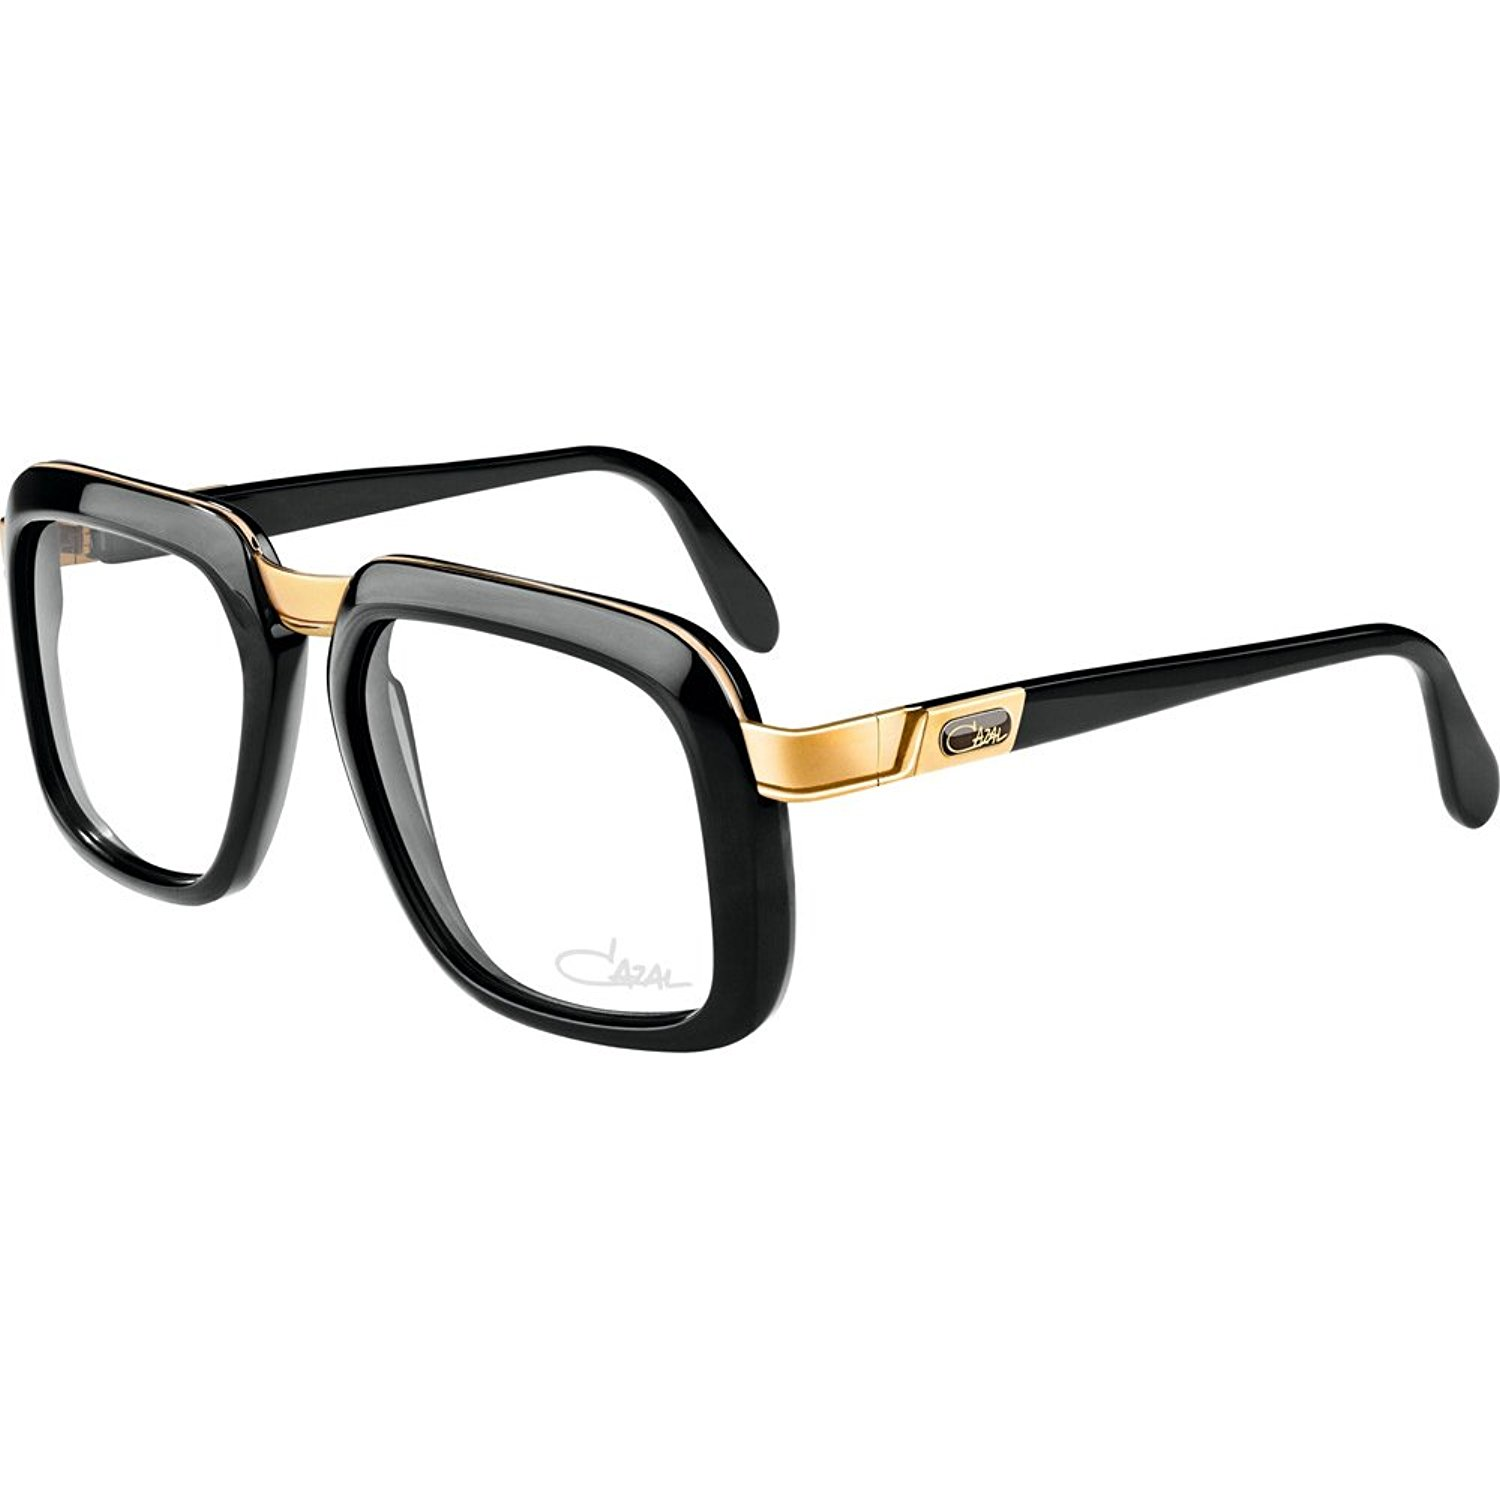 634663df5143 Get Quotations · Cazal 616 Eyeglasses 001 Black Gold Clear Lens 56 mm